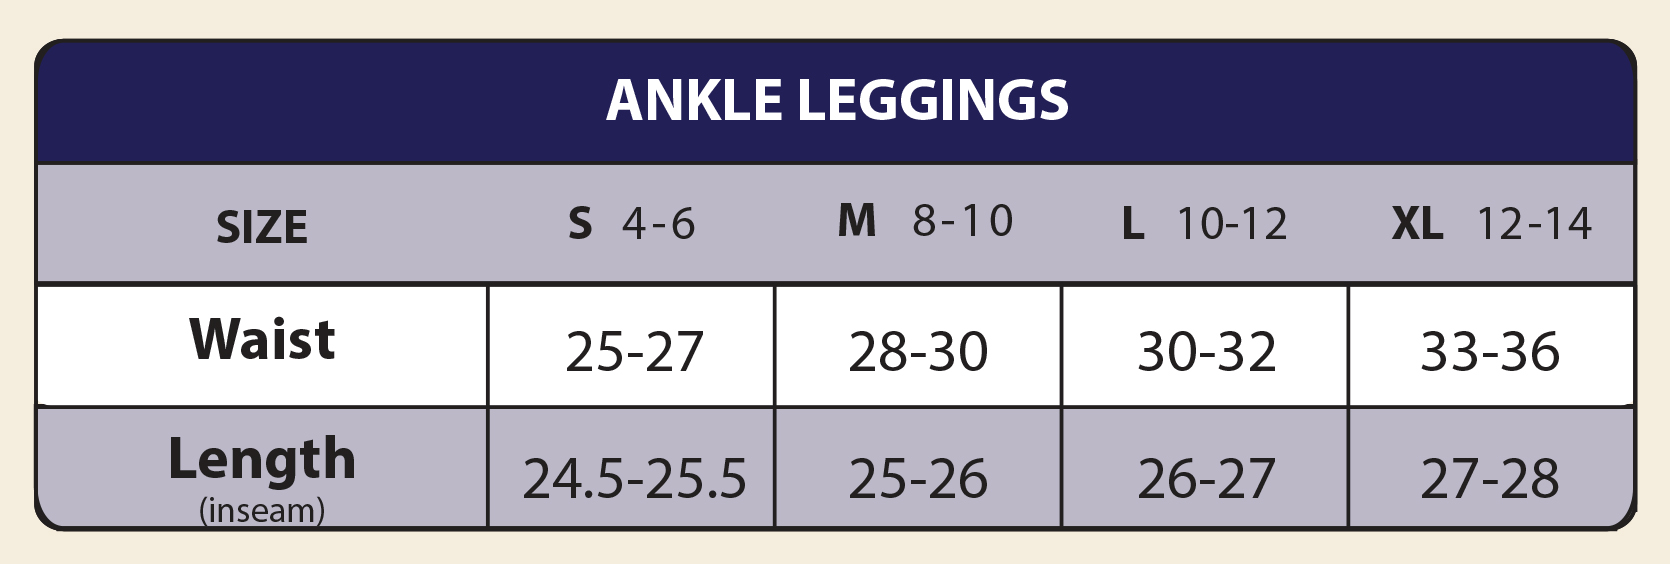 ankleleggingchart.jpg